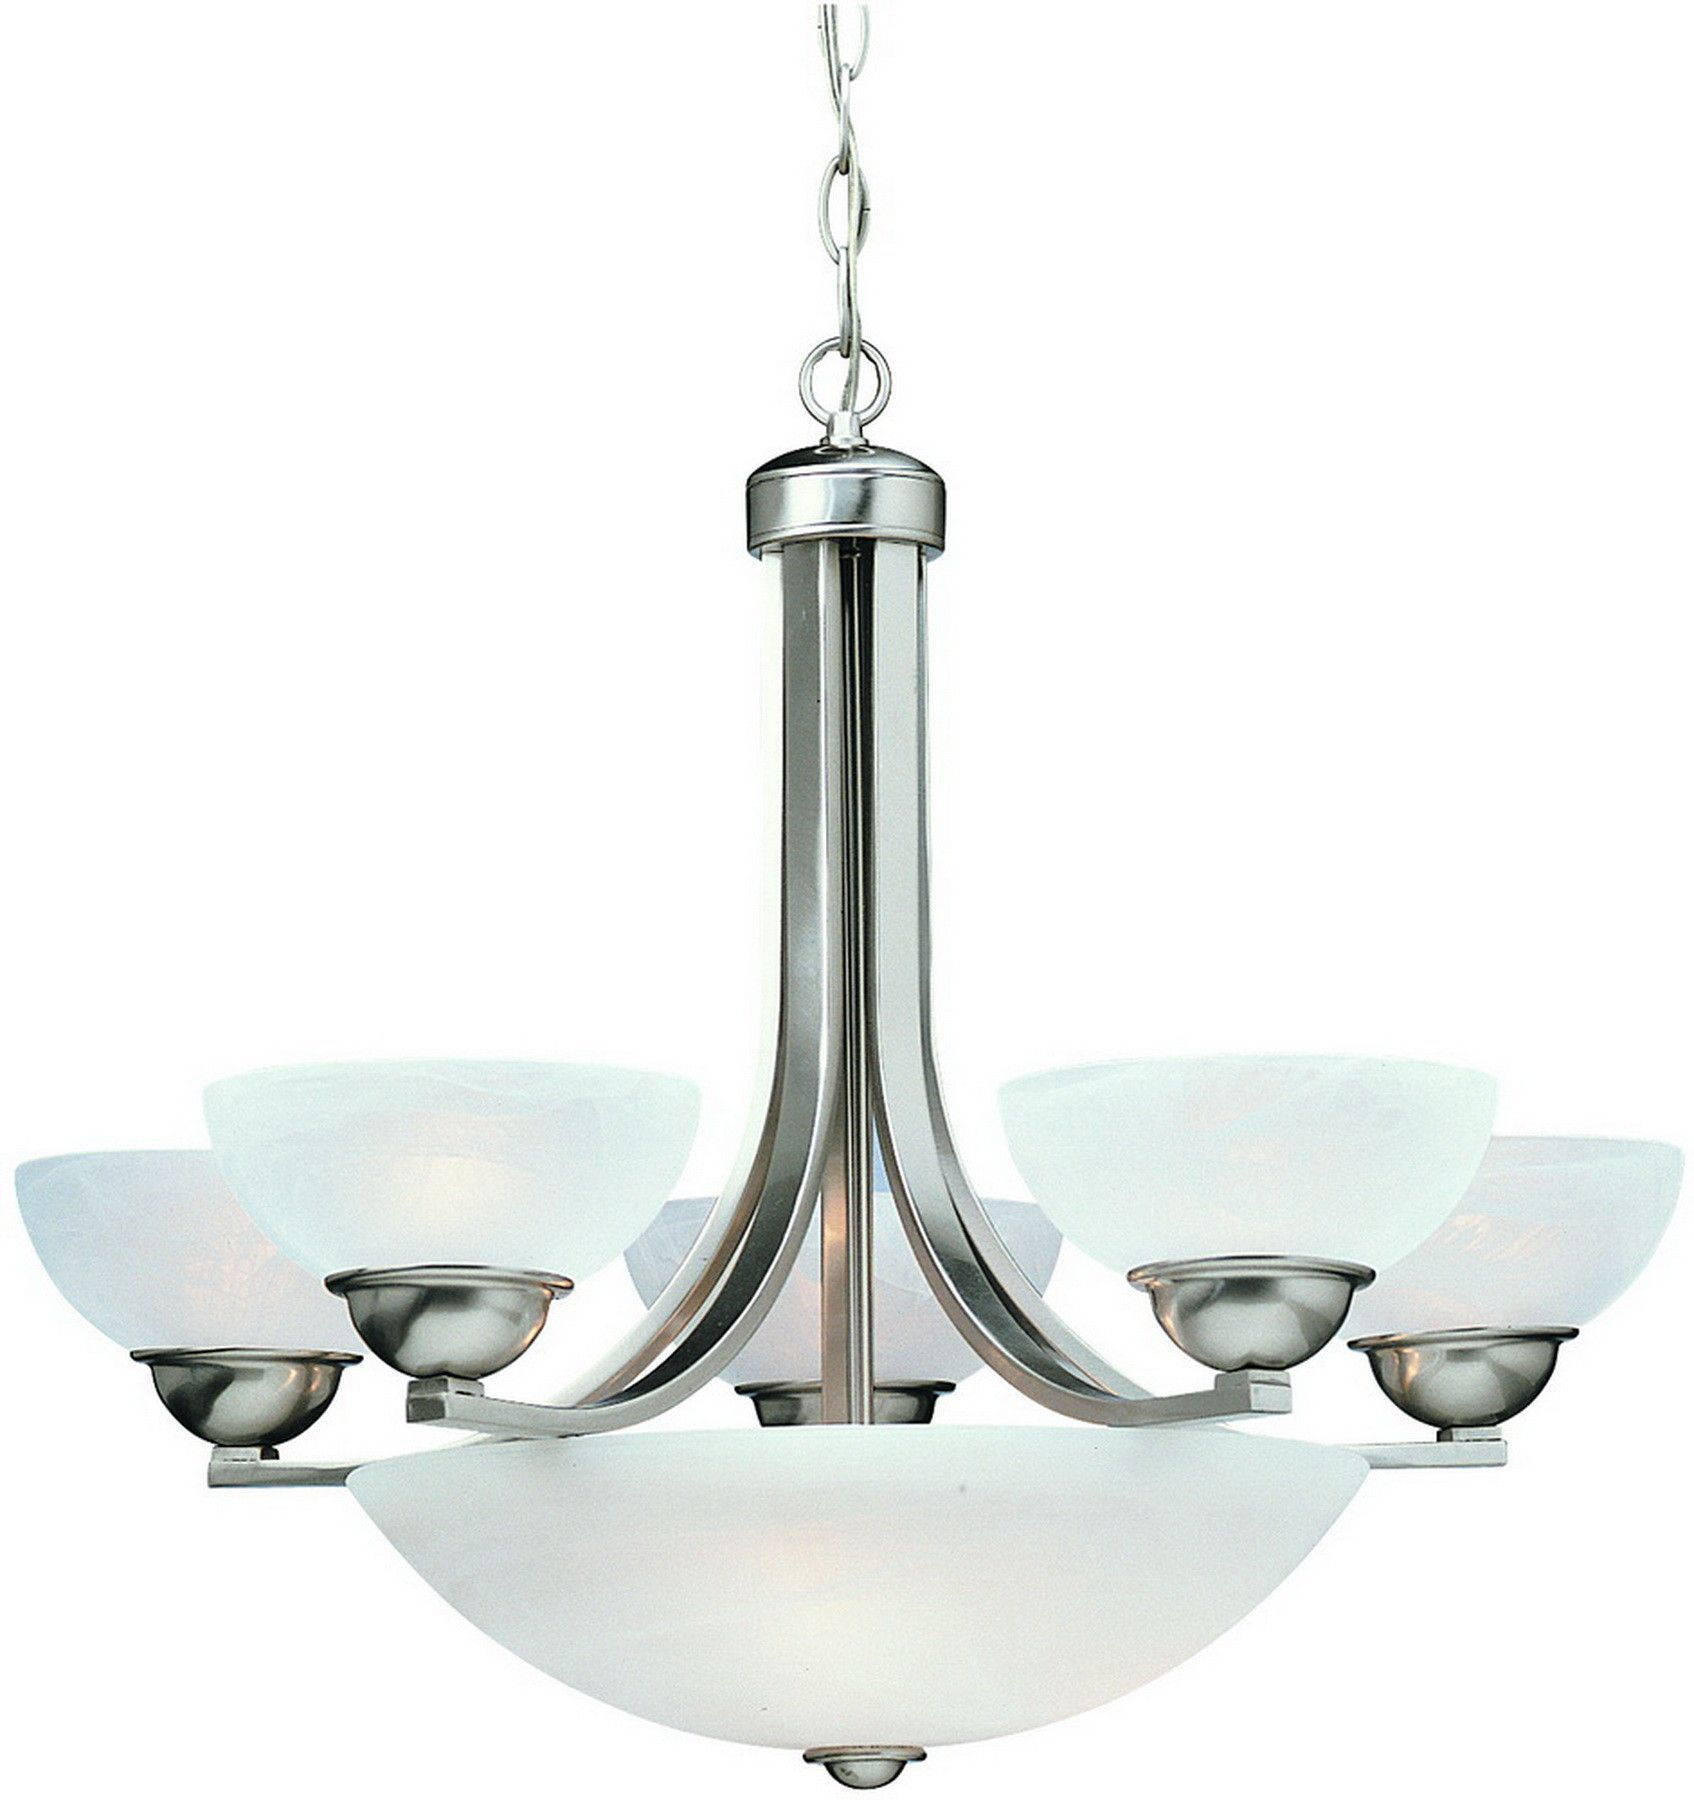 Fireside 8 Light Bowl Chandelier Products Pinterest